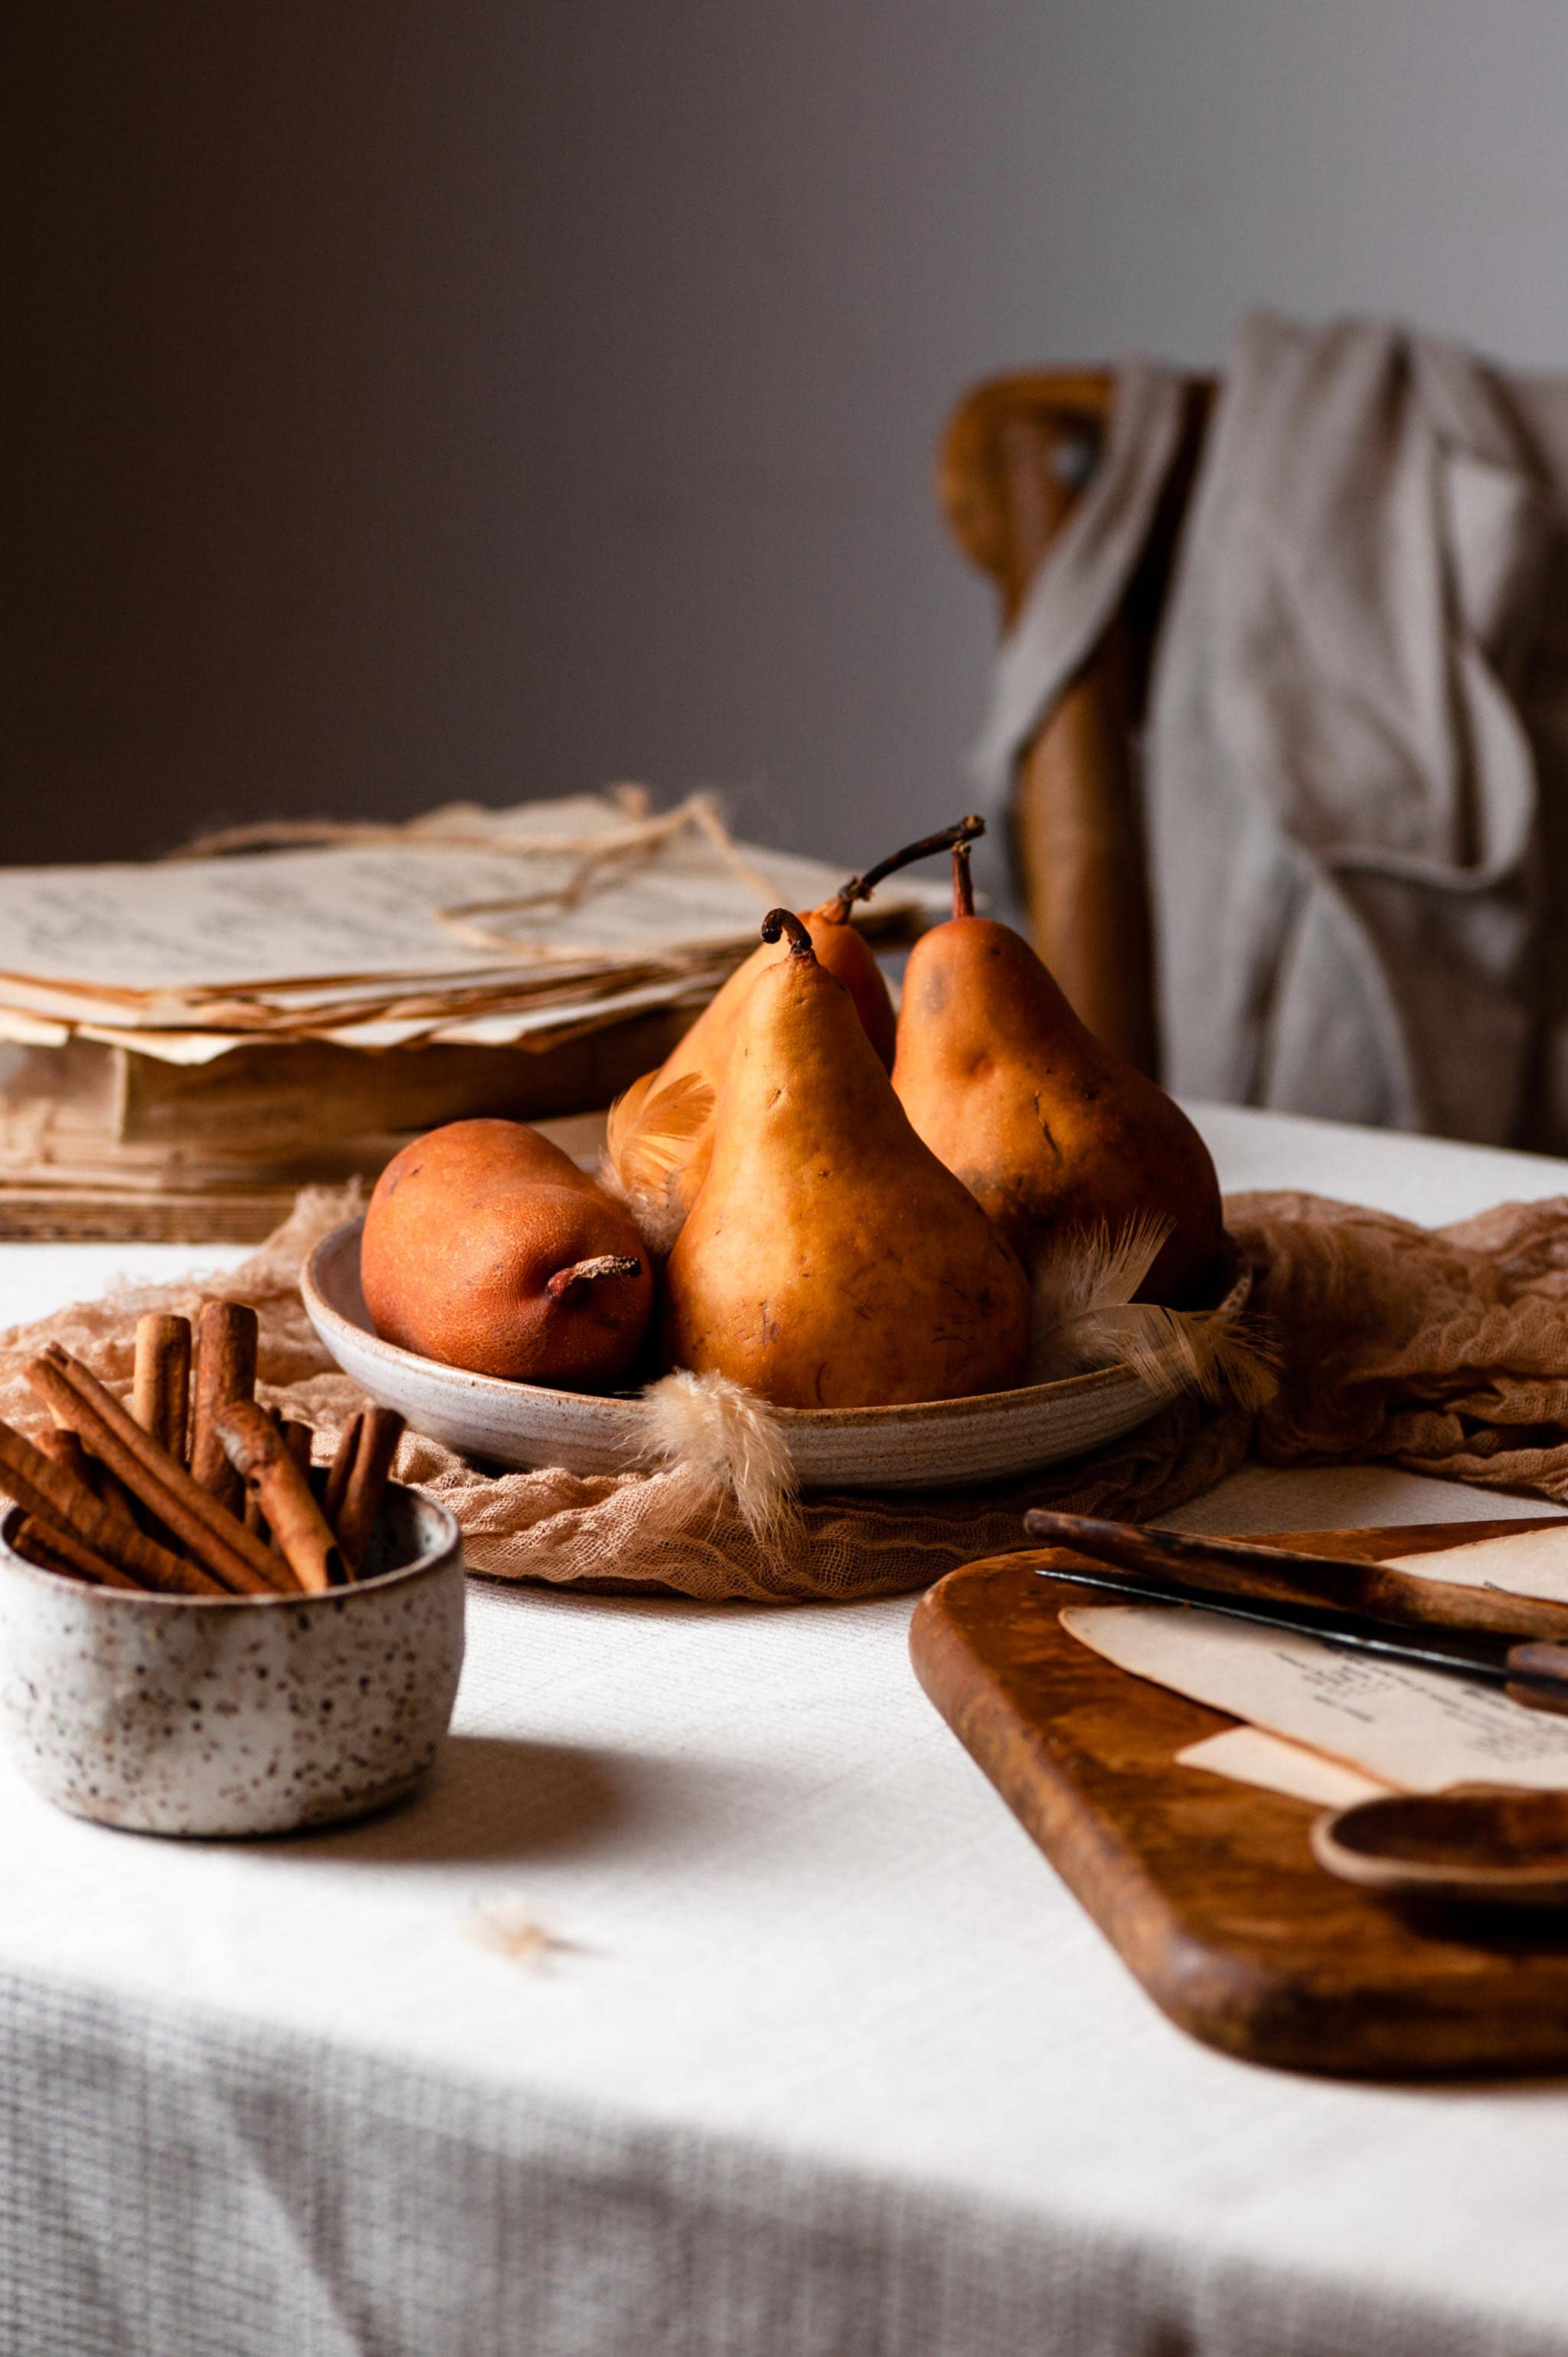 Autumn Rustic Kitchen with Bosch Pears